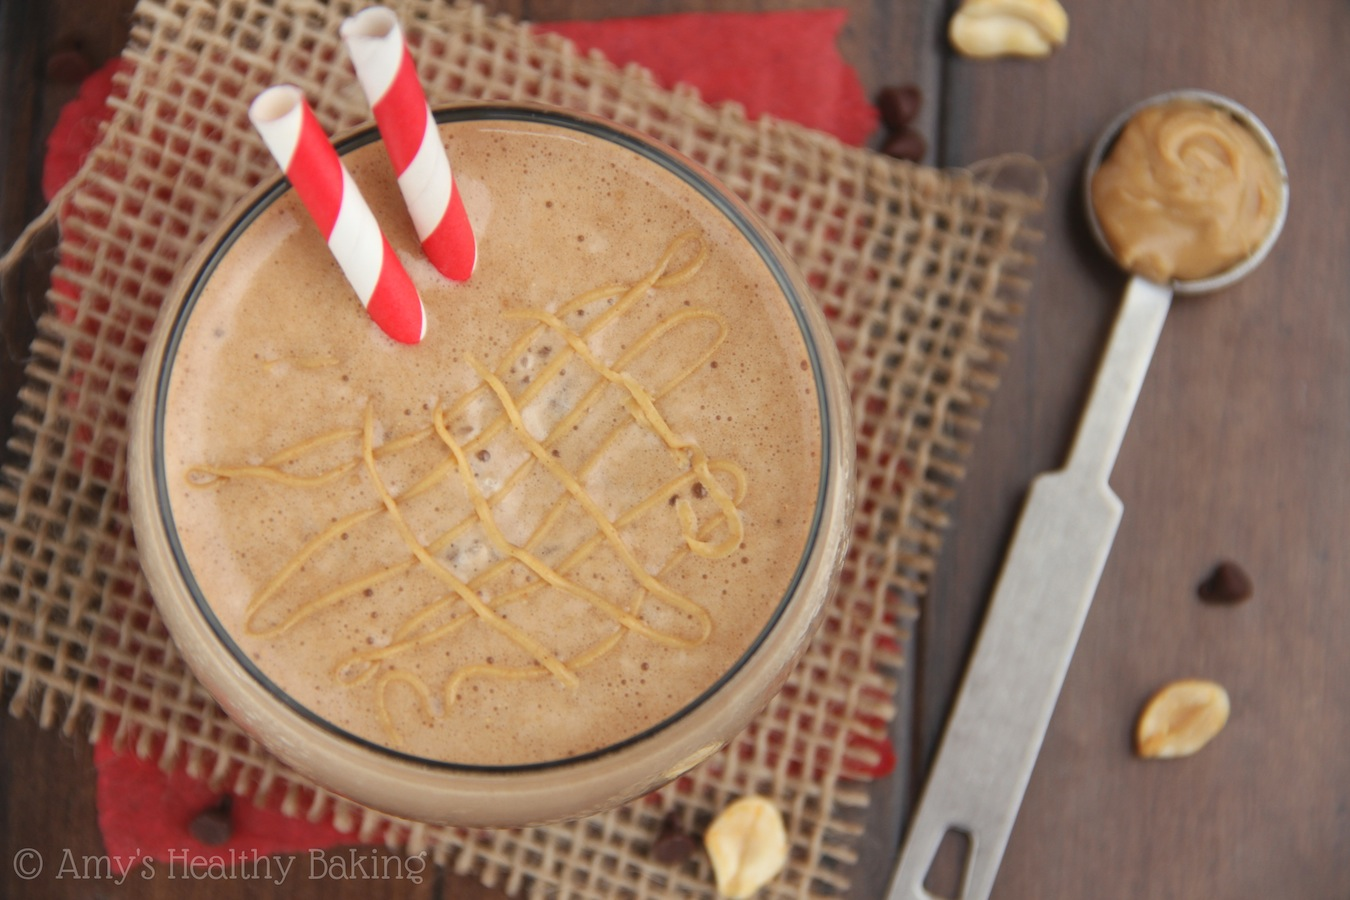 Skinny Chocolate Peanut Butter Frappuccino -- only 95 calories & tastes just like a Reese's PB cup!